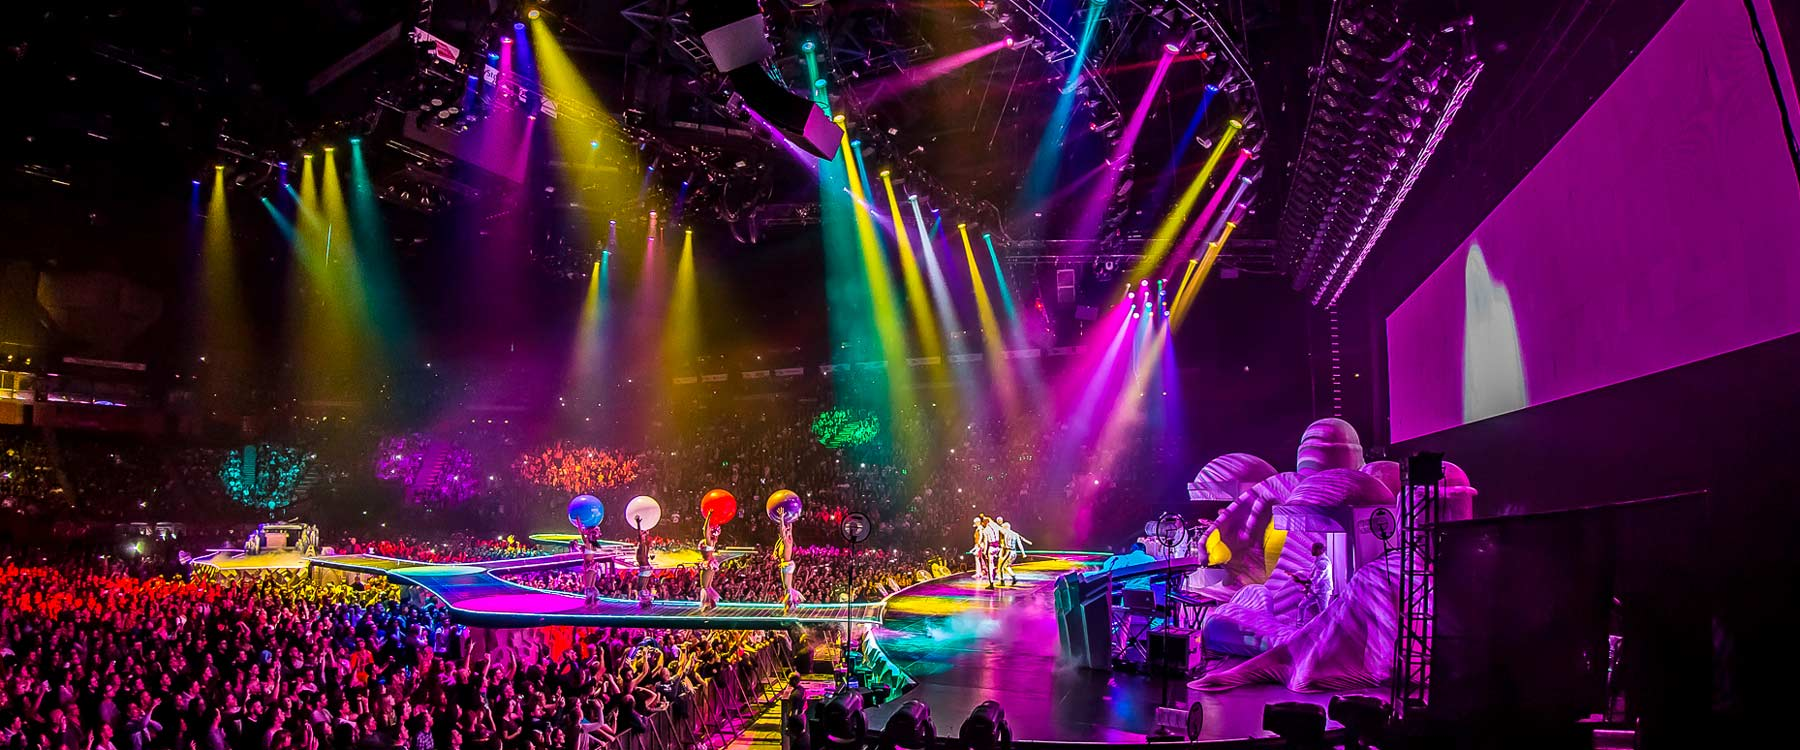 solotech_tour_lady_gaga_artrave_1.jpg